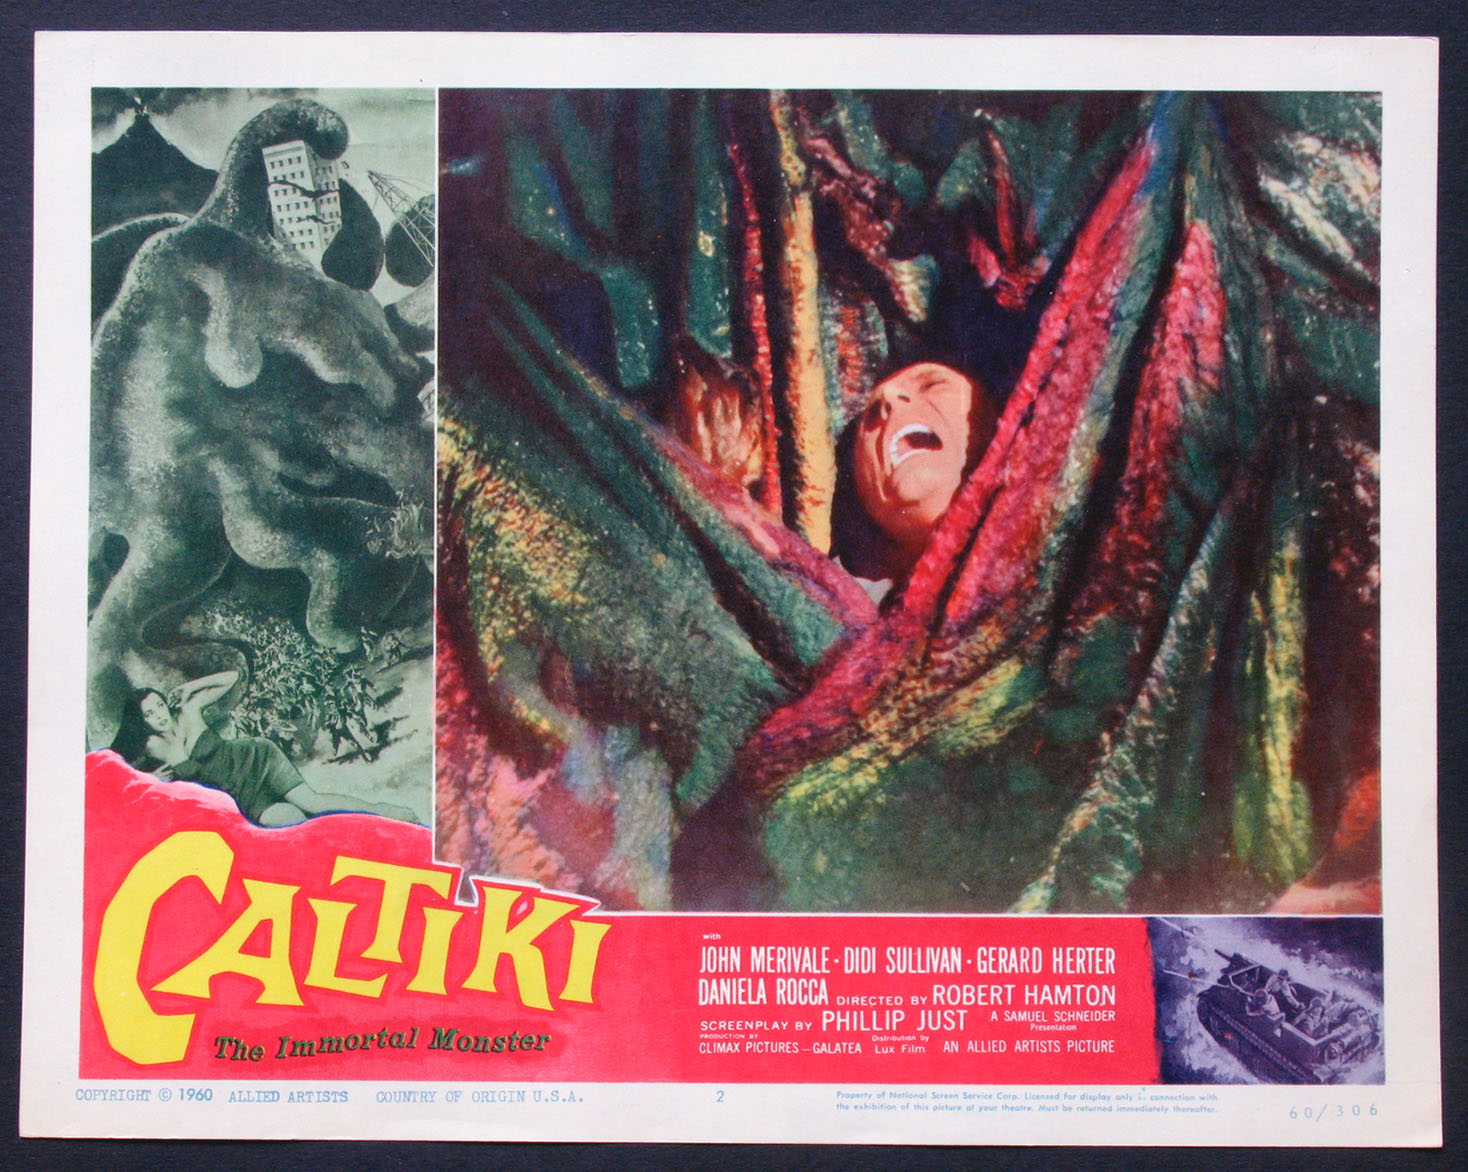 CALTIKI, The Immortal Monster @ FilmPosters.com